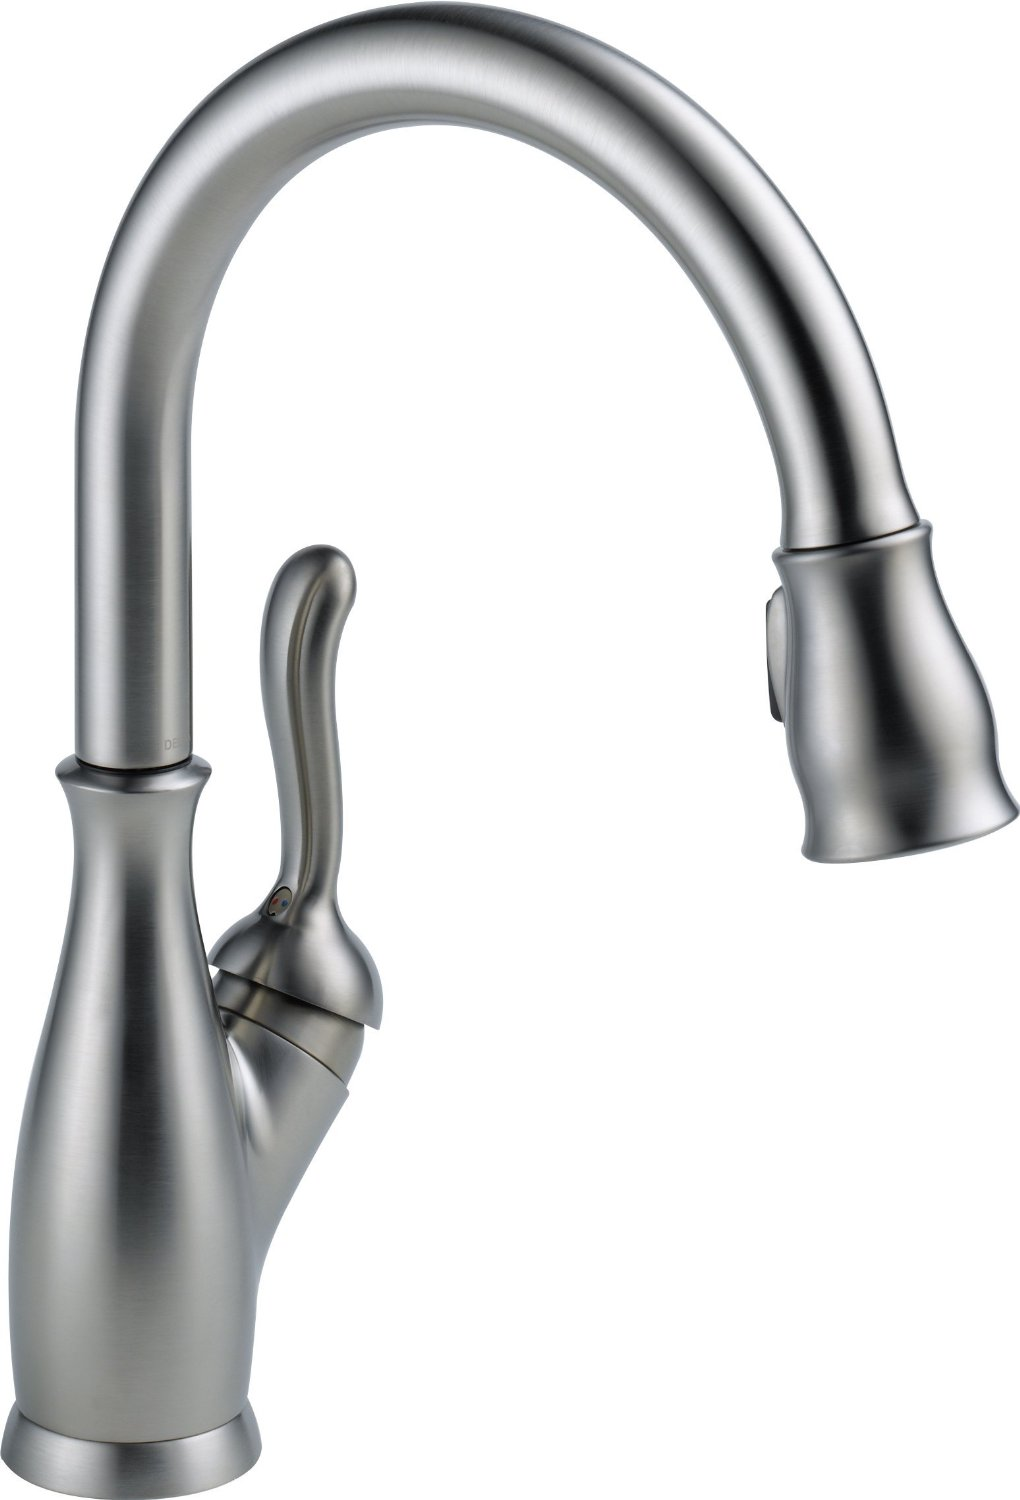 Most Popular Kitchen Faucets Sinks Top Rated Kitchen - Delta touchless kitchen faucet